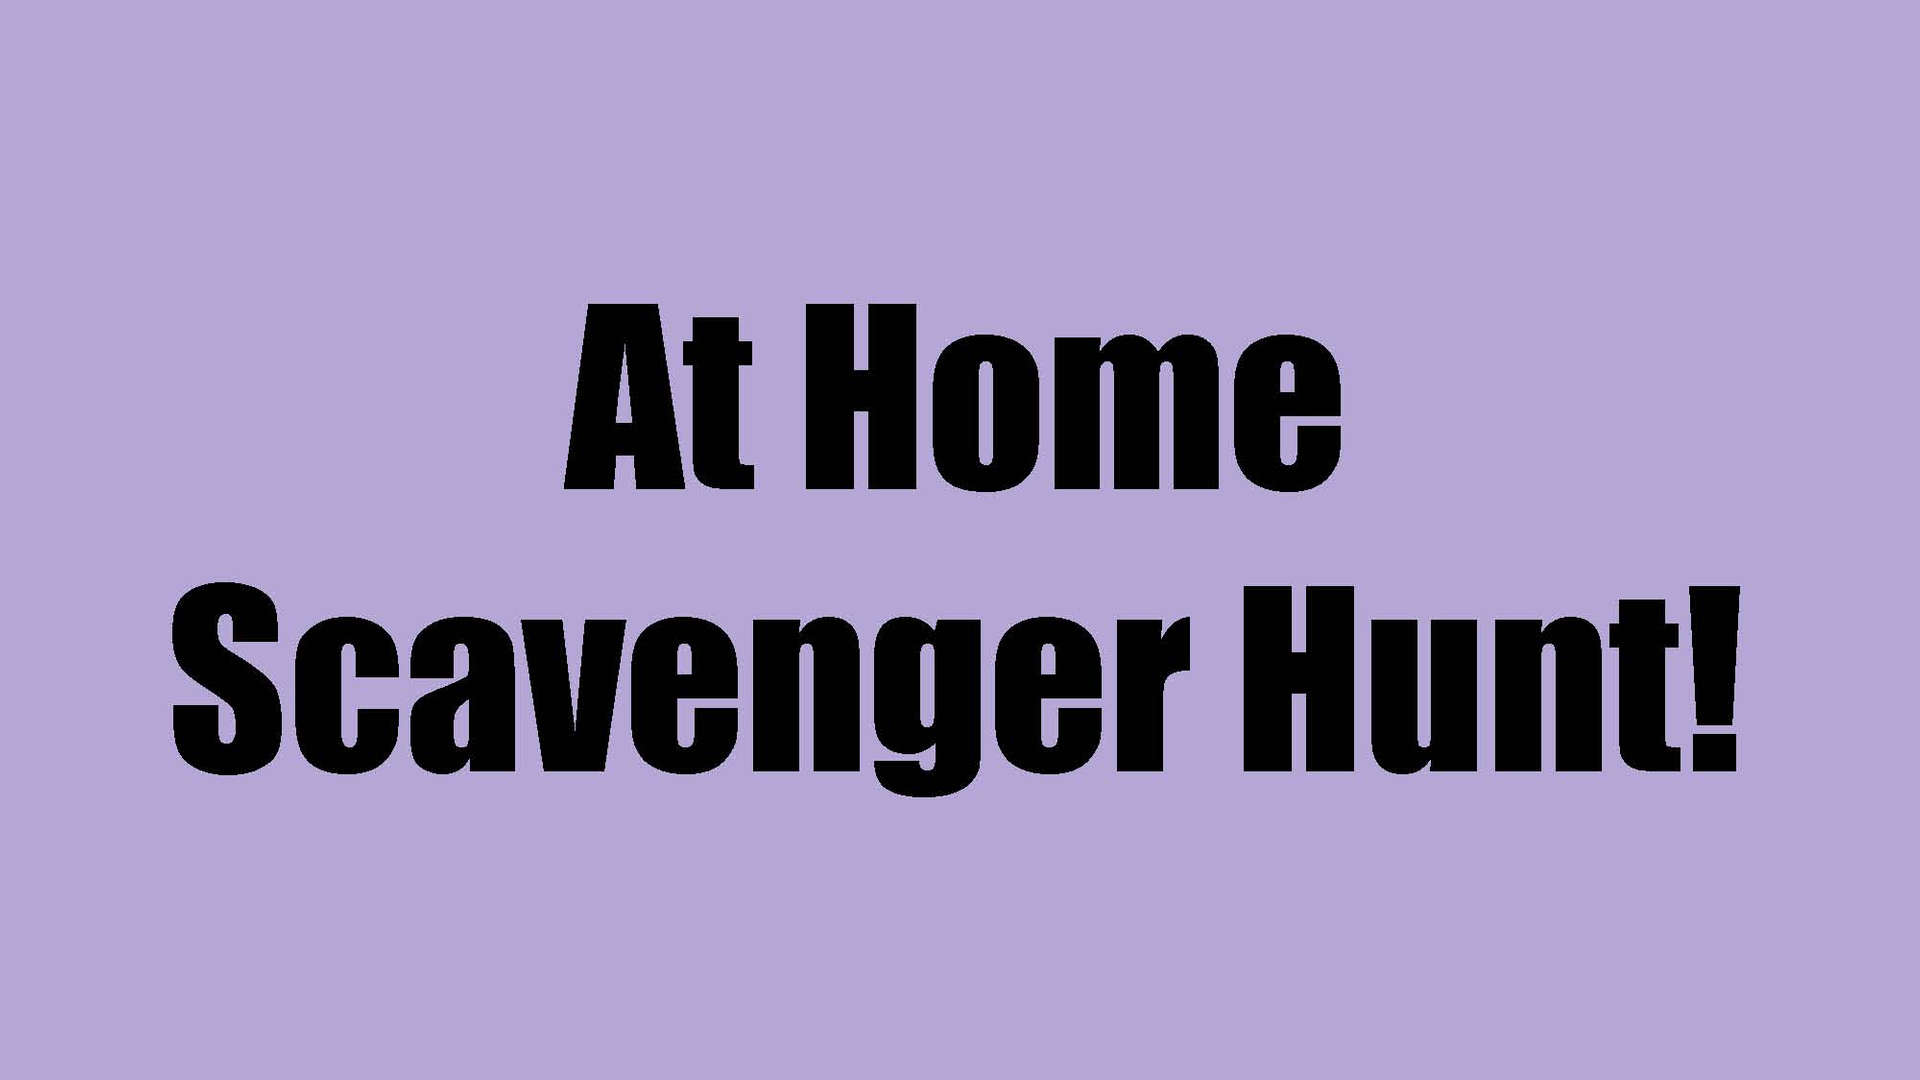 Home Scavenger Hunt